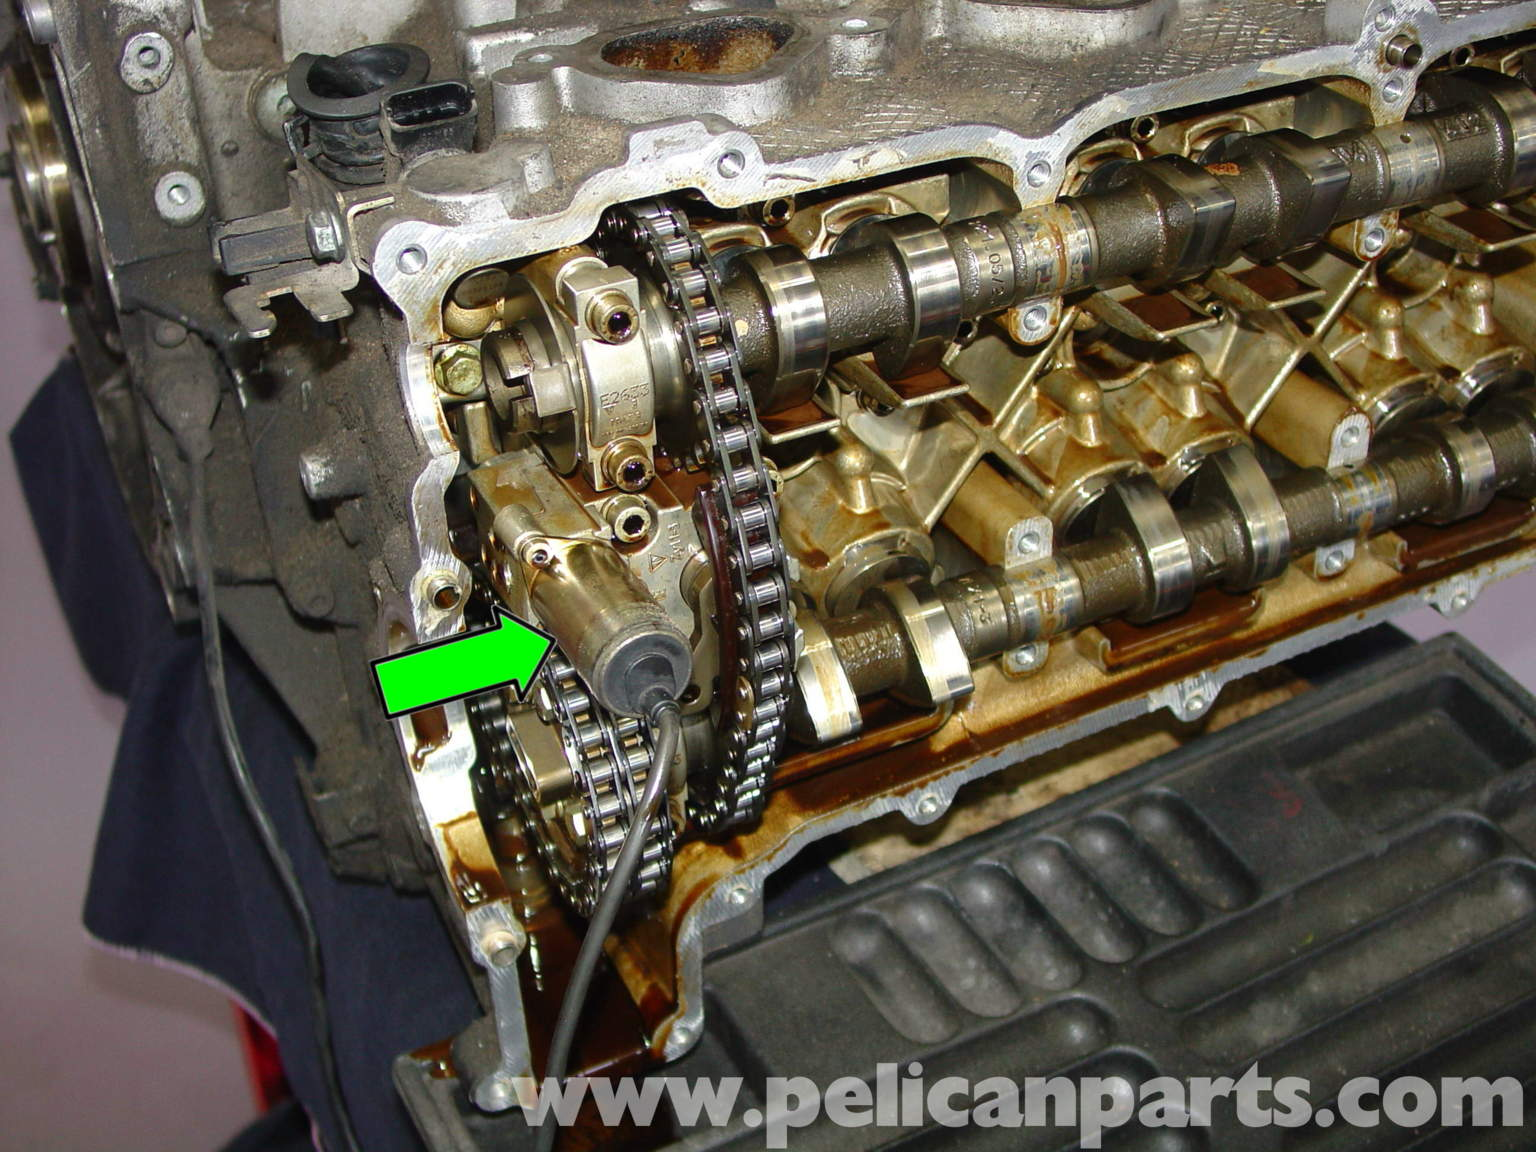 pelican technical article porsche boxster engine teardown large image